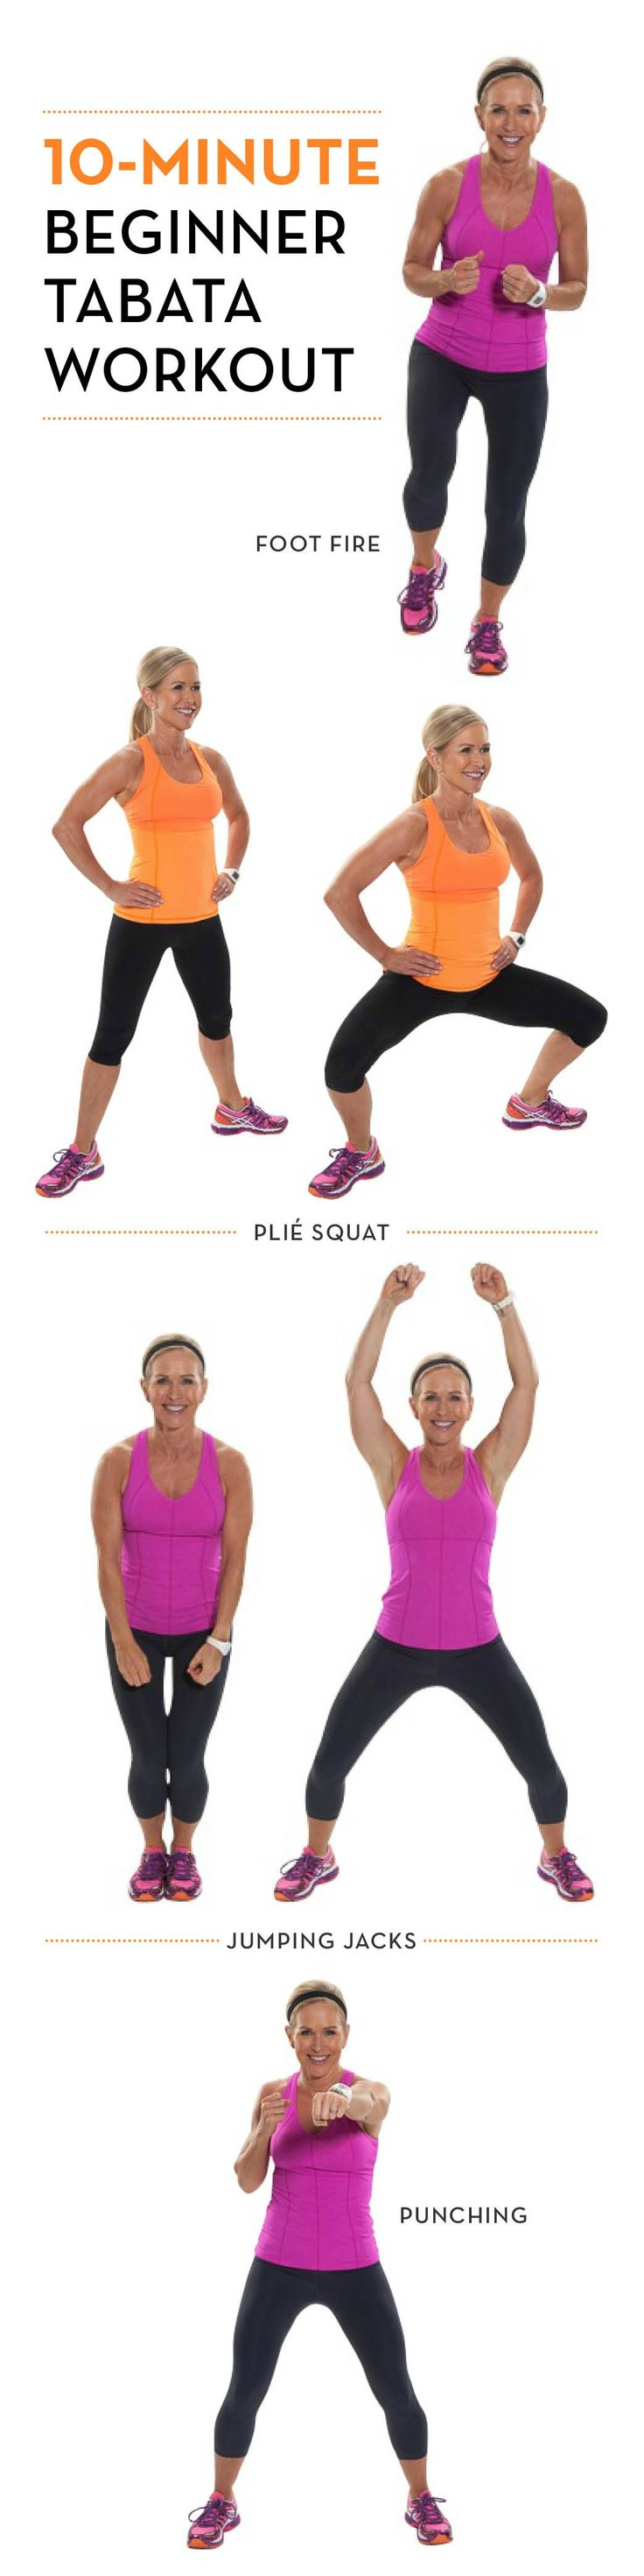 New to tabatas? Try this 10-minute fat-burning workout for beginners! #HIIT #fitness